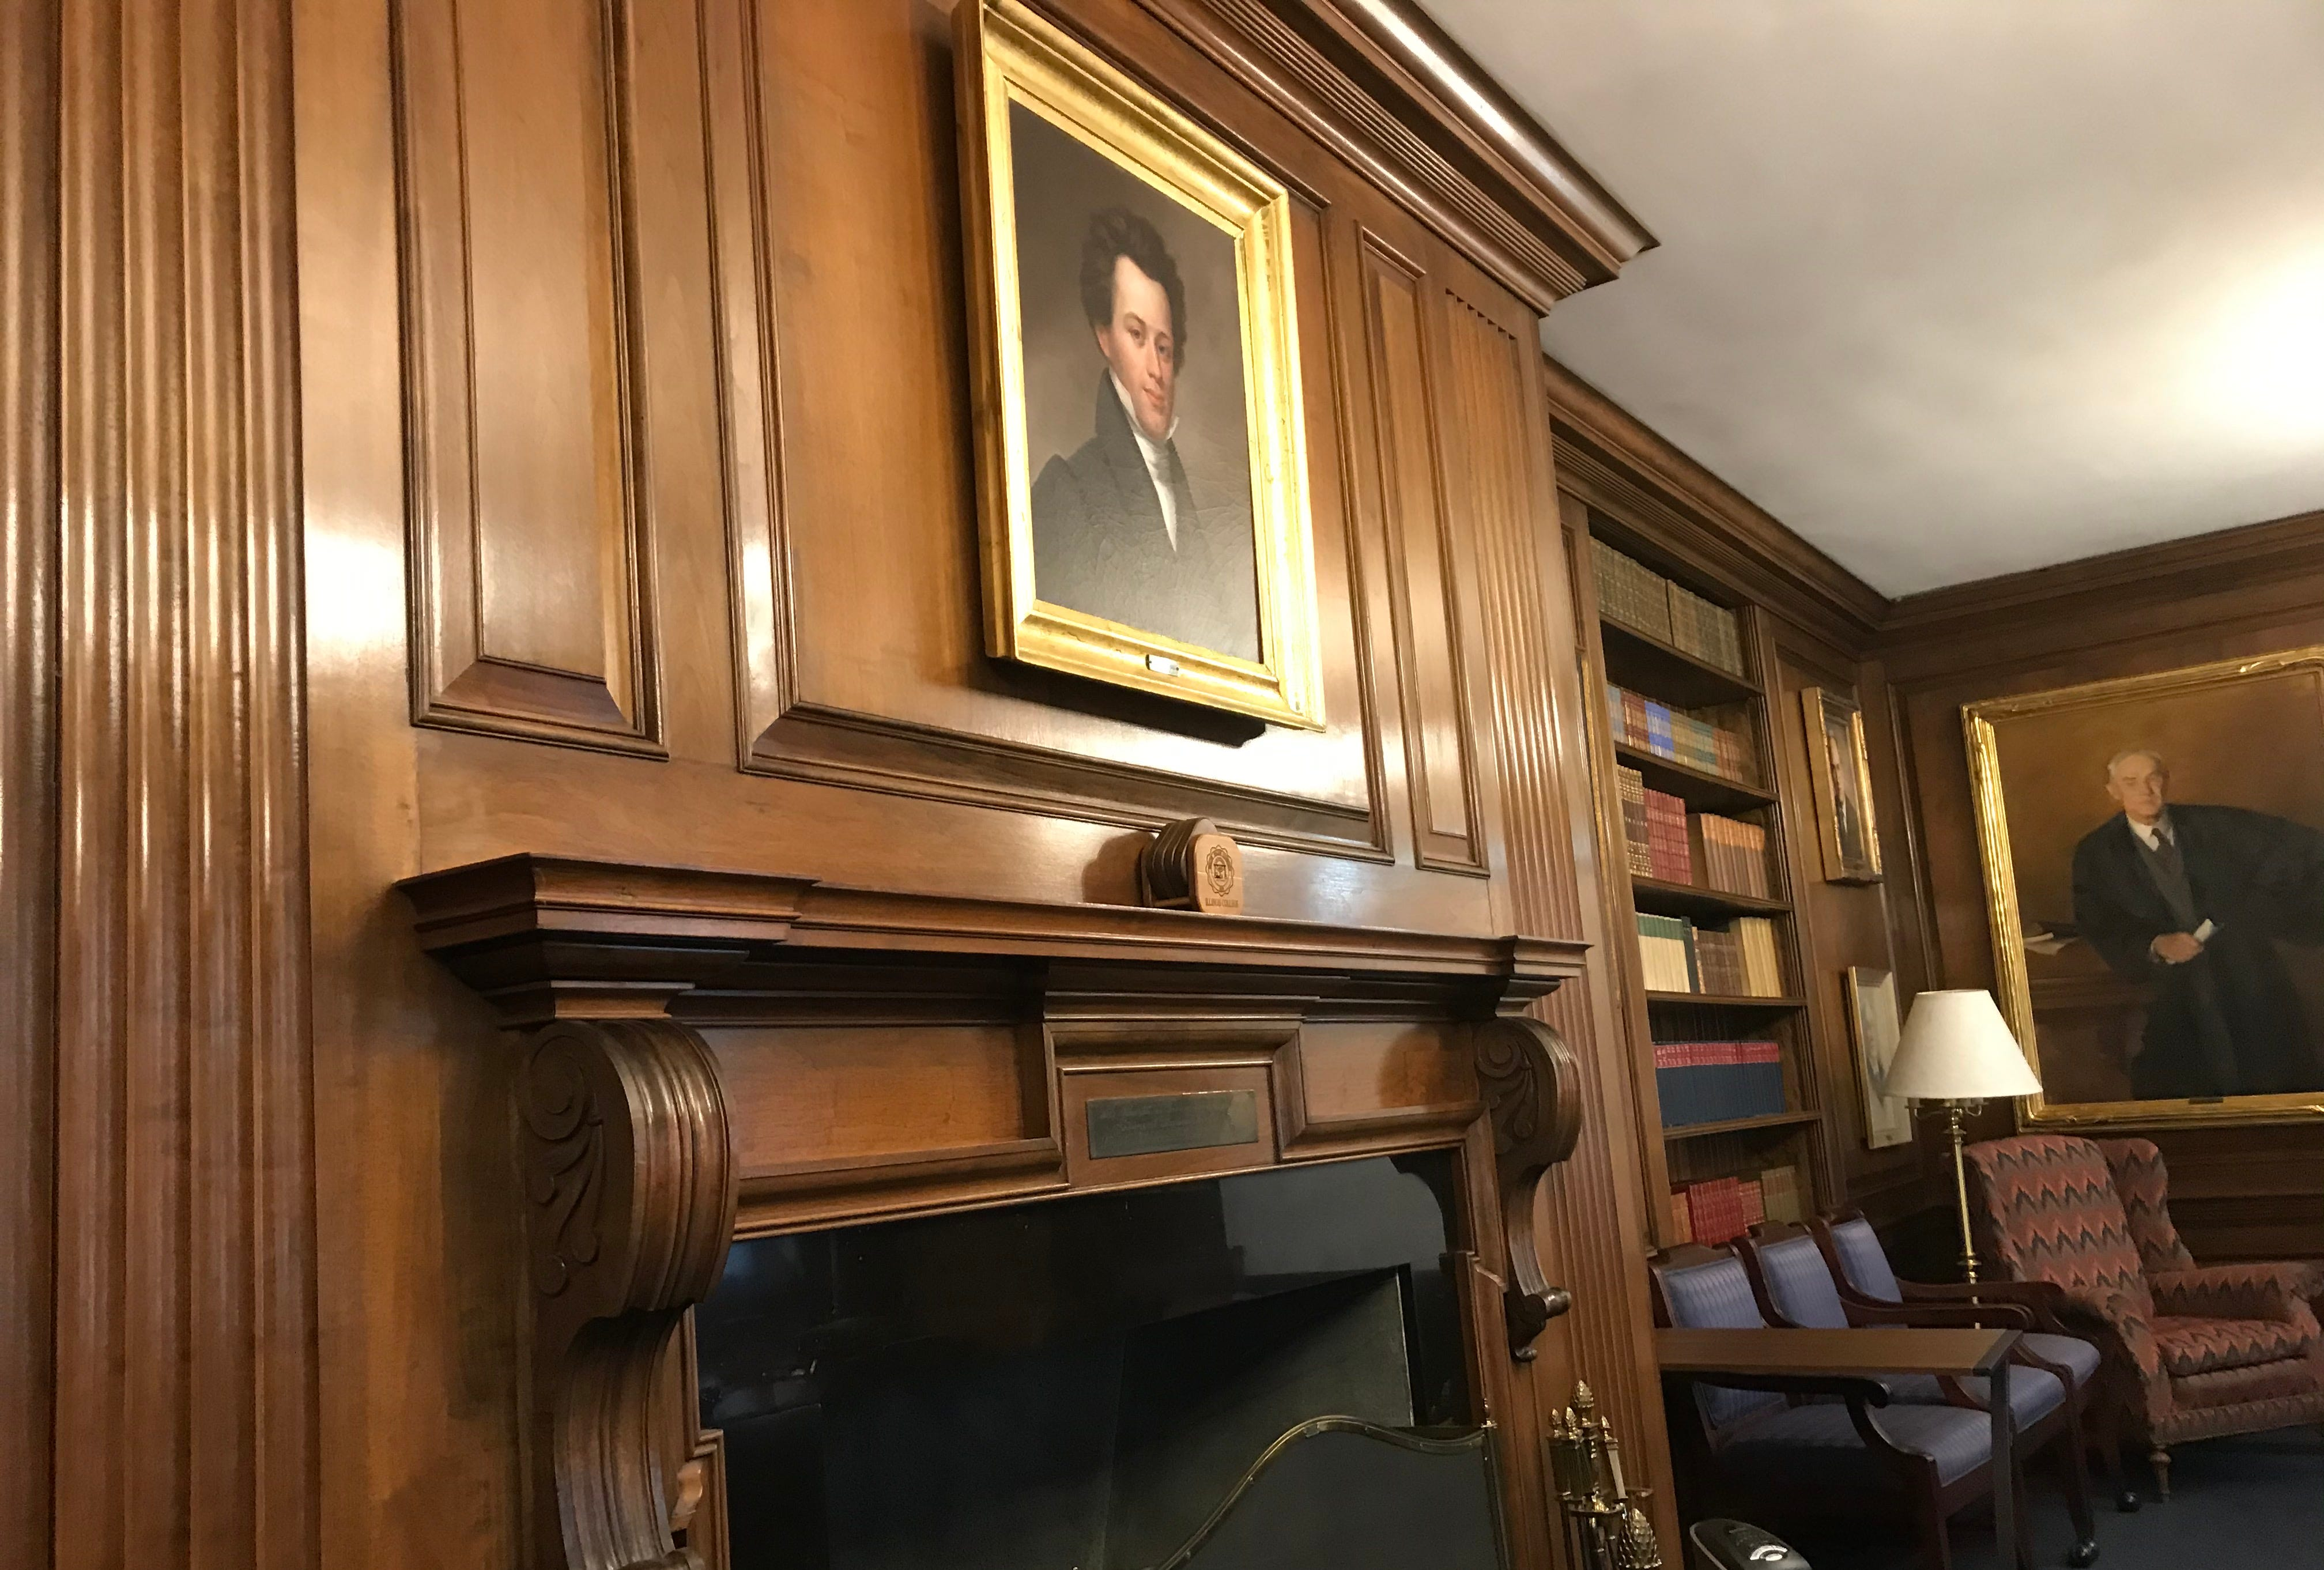 A painting of Edward Beecher, the first president of Illinois College, hangs above a fireplace in a conference room at the school.